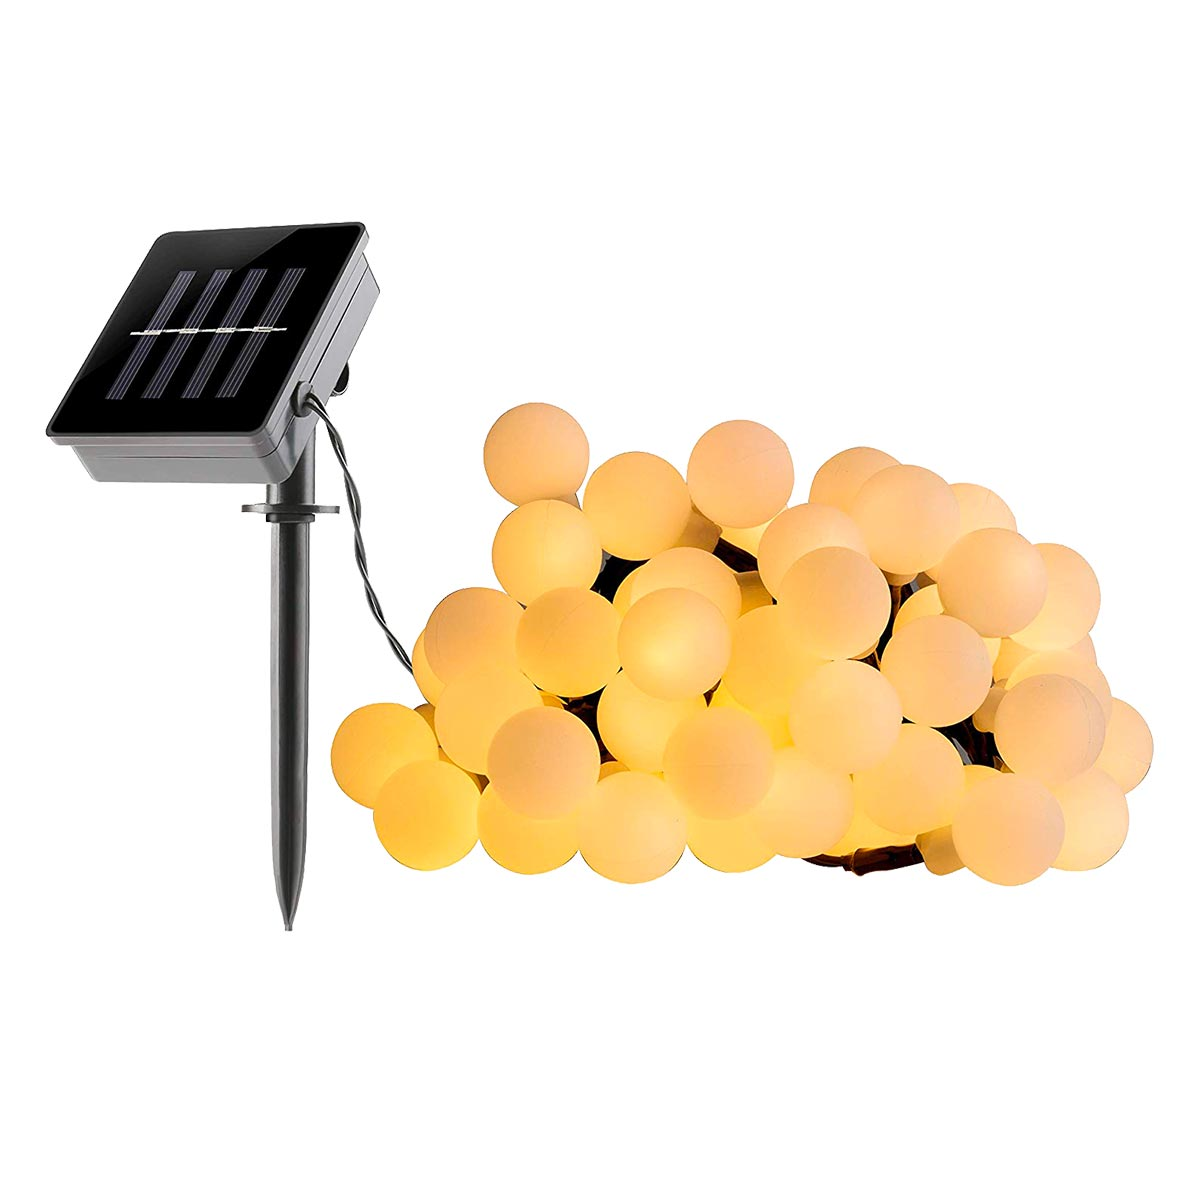 Guirlande lumineuse solaire ampoules rondes 60 LED blanc chaud BILLY L6,90m - REDDECO.com